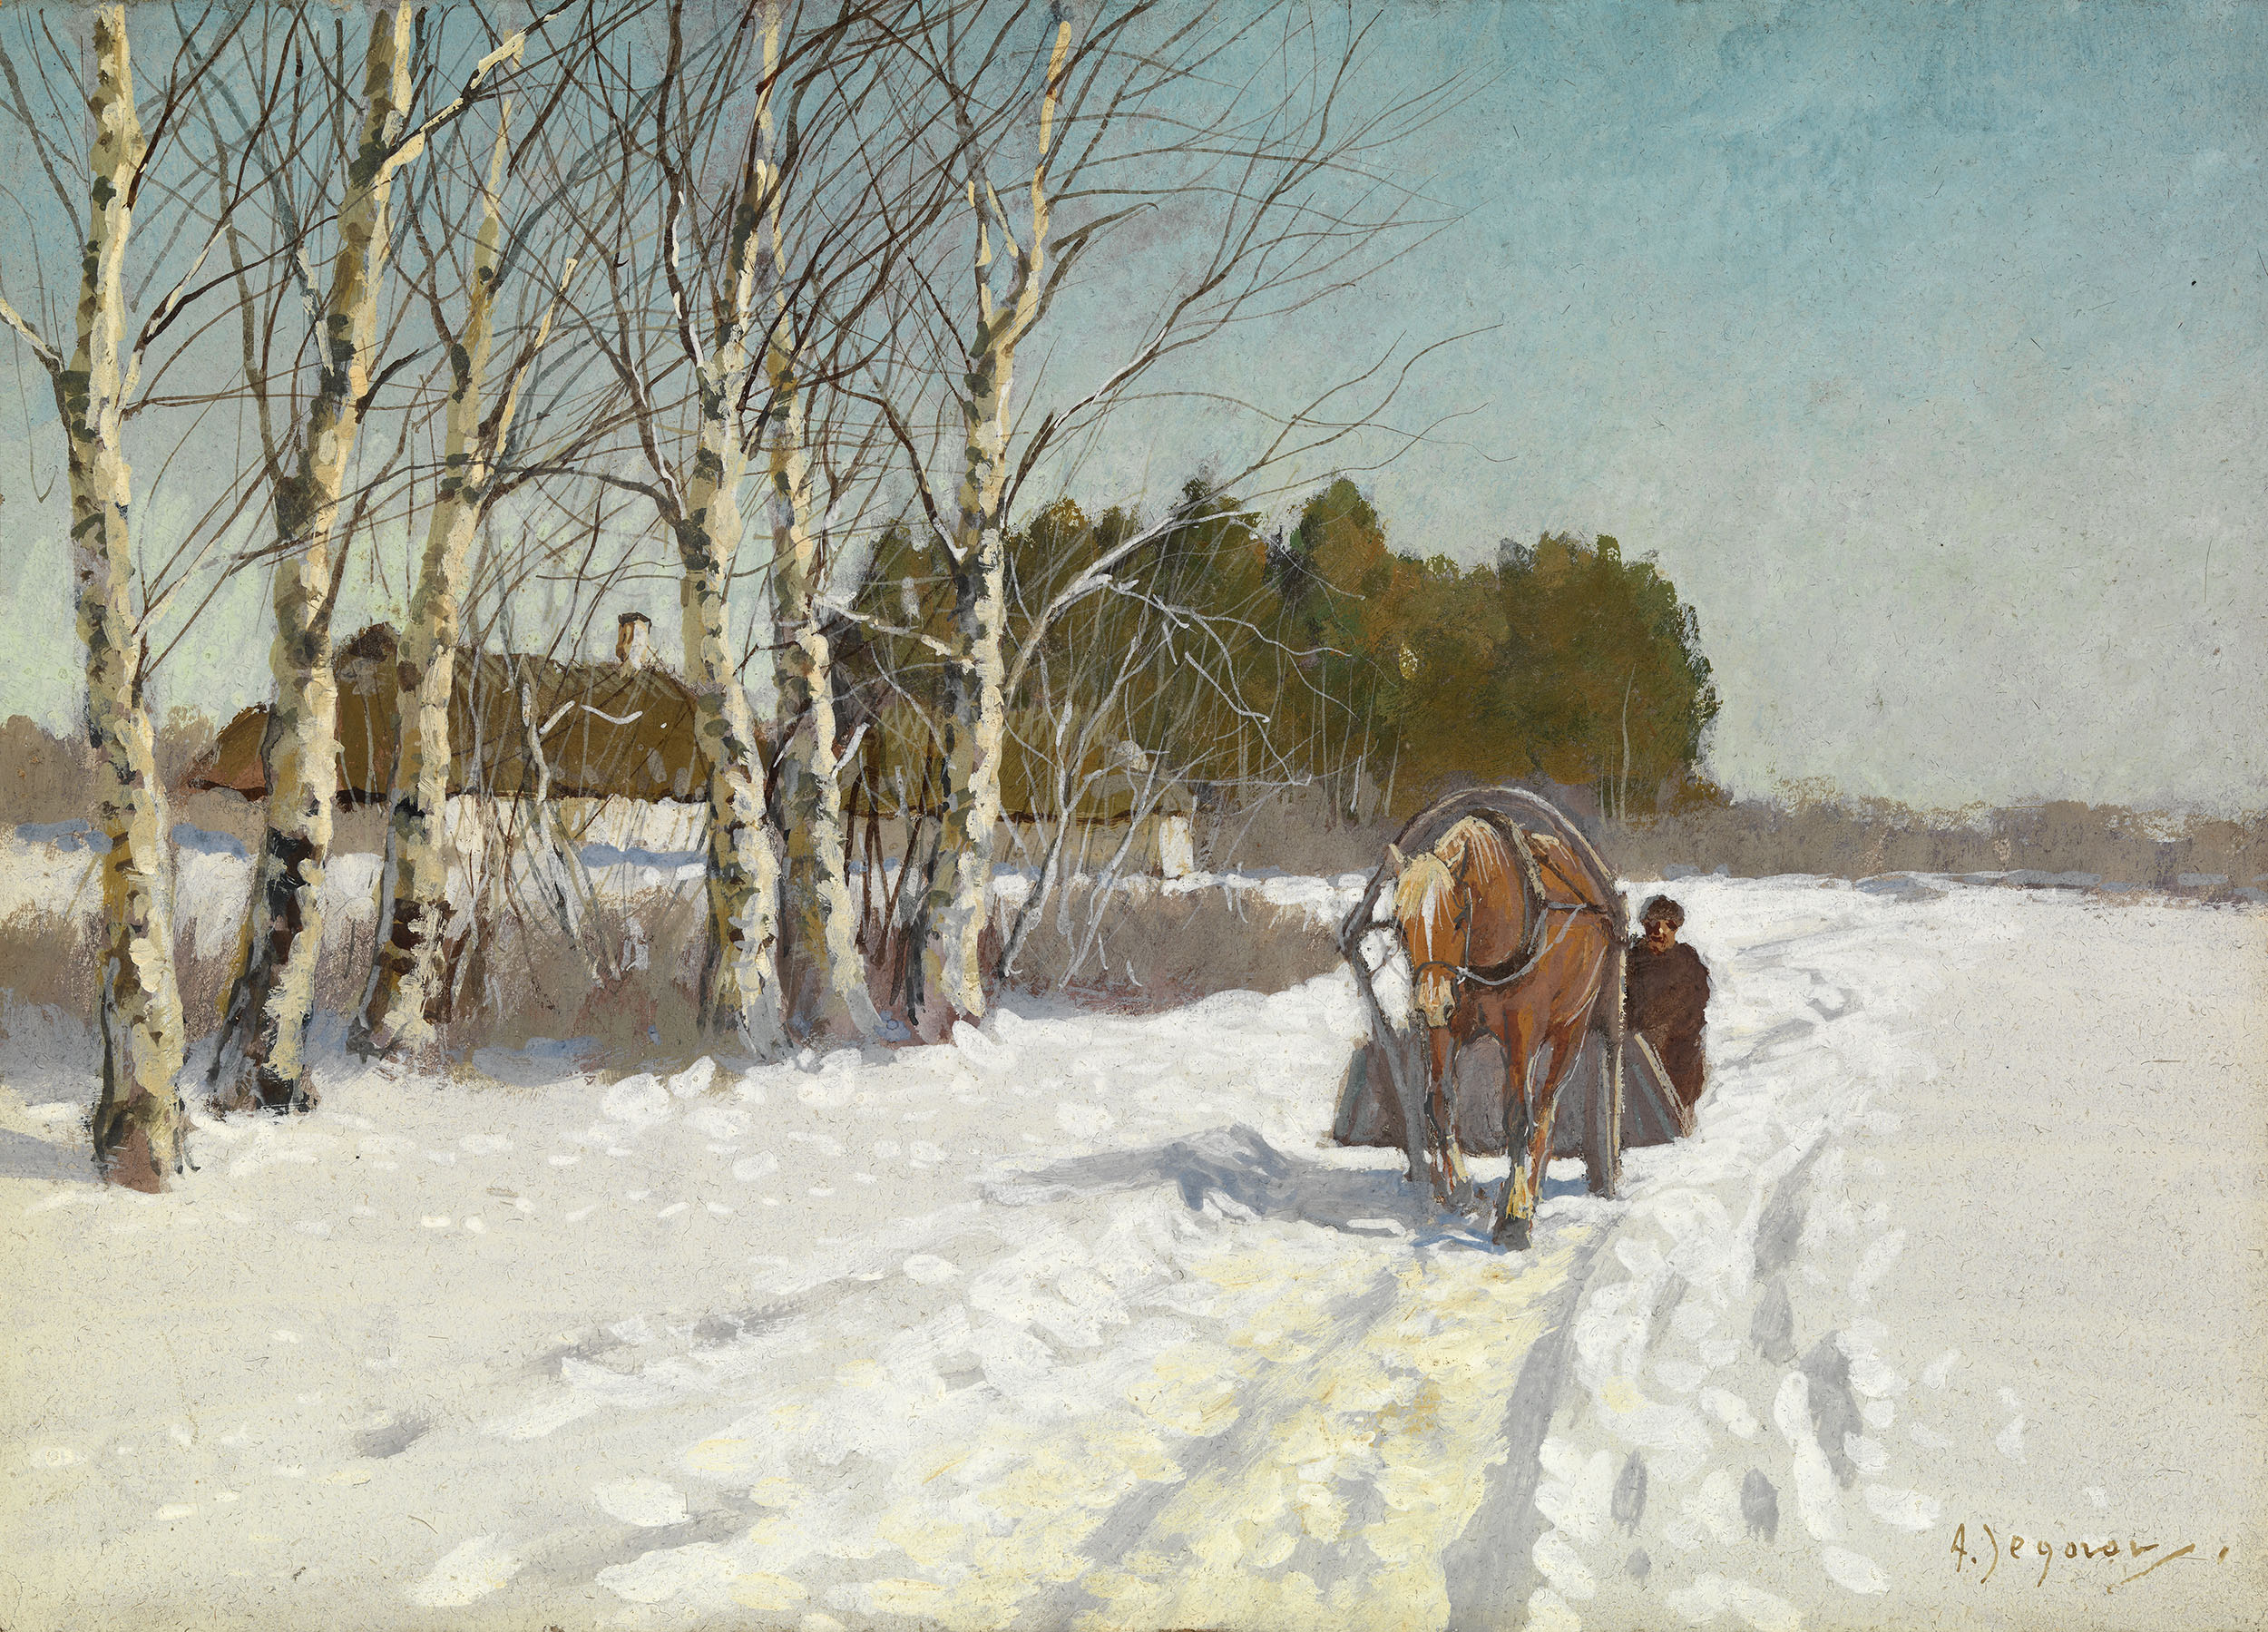 EGOROV, ANDREI Horse and Sleigh in a Snow-covered Field